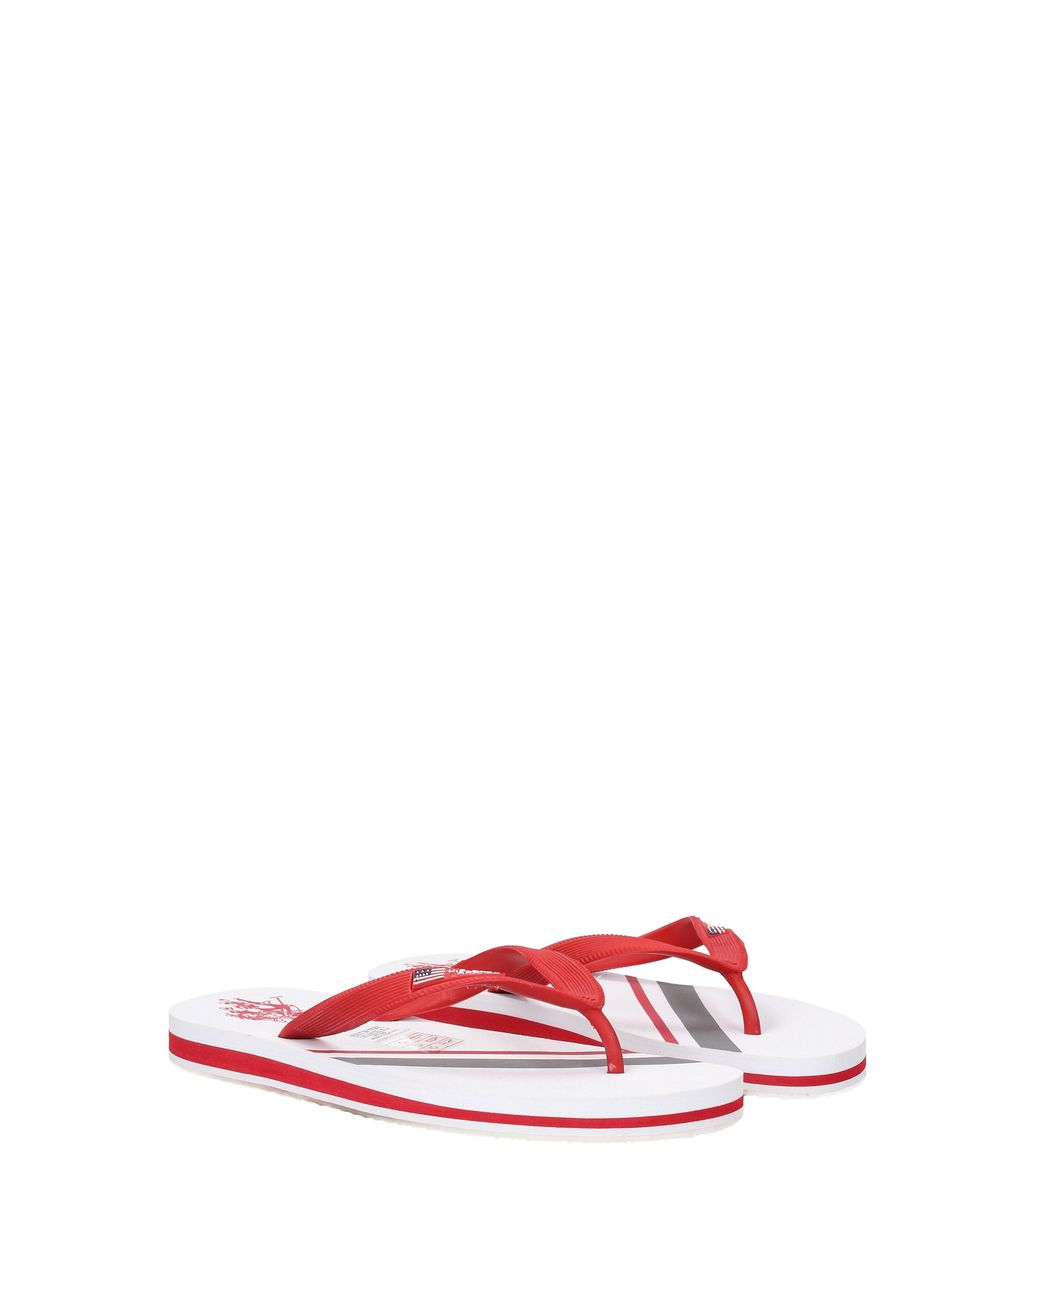 c6f55cc022b9 Lyst - U.S. POLO ASSN. Flip Flops Men Red in Red for Men